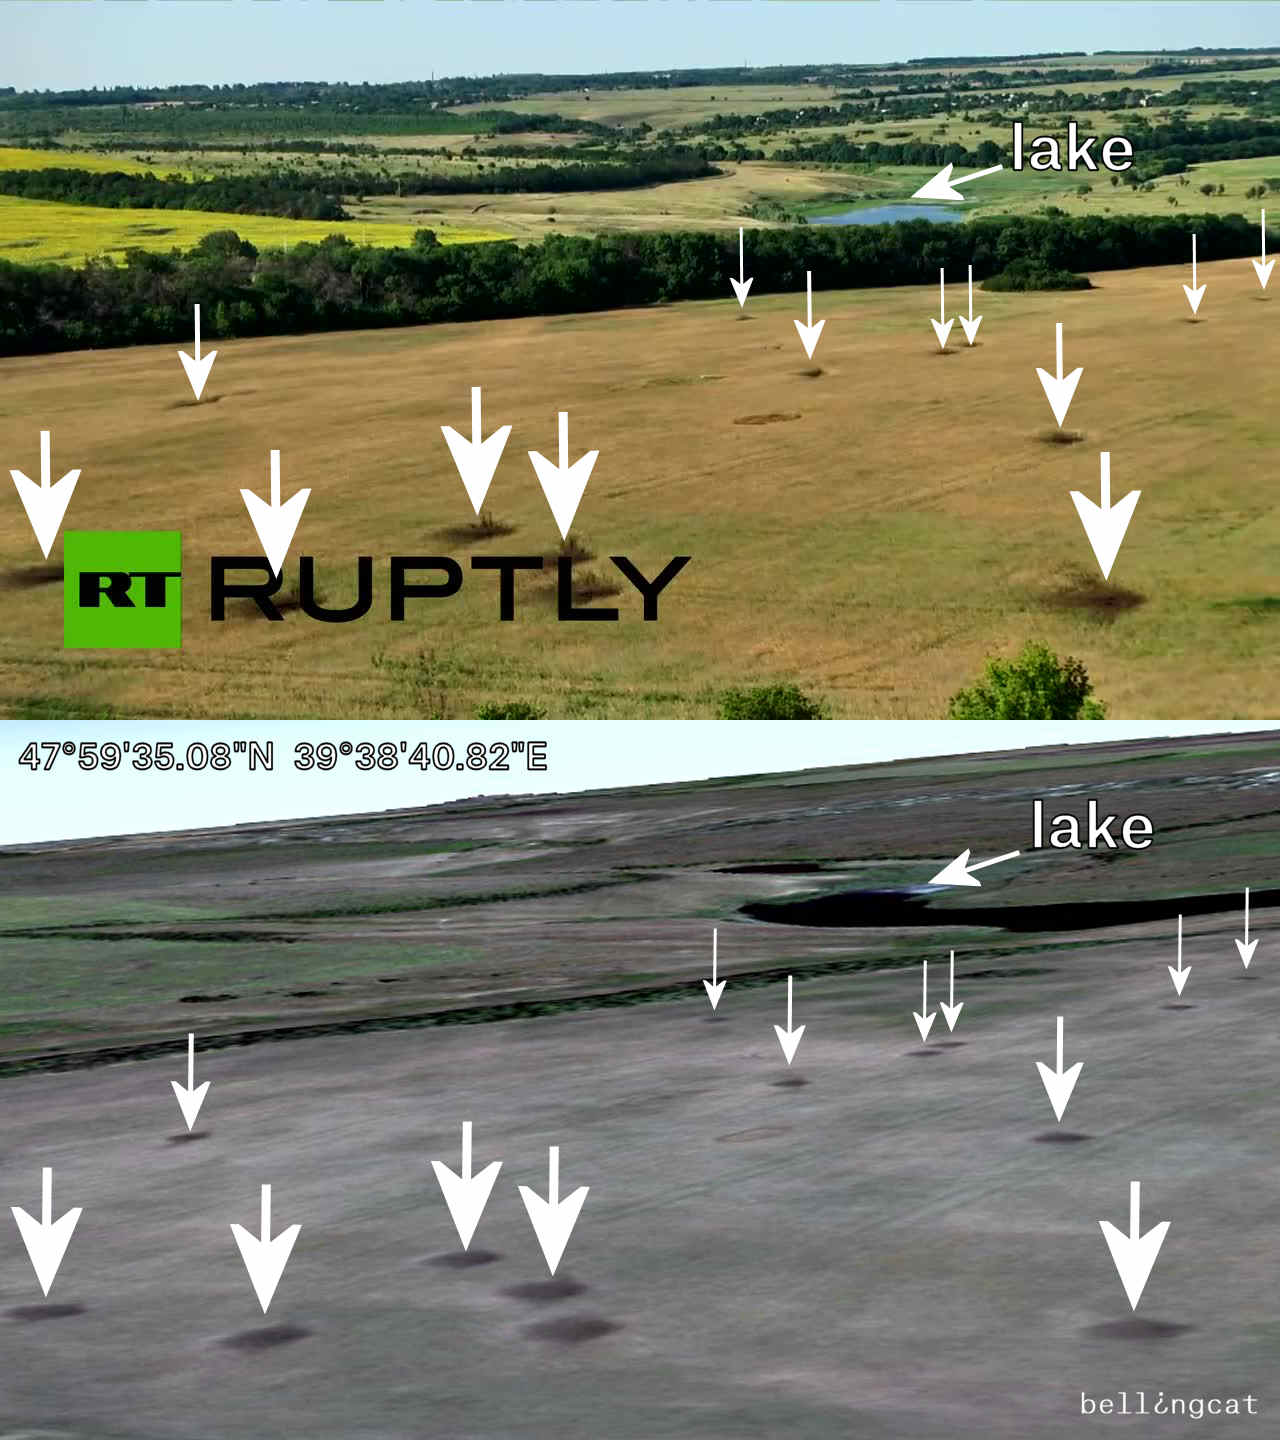 Comparison shot from Ruptly video and the 15 August 2014 satellite image from Google Earth